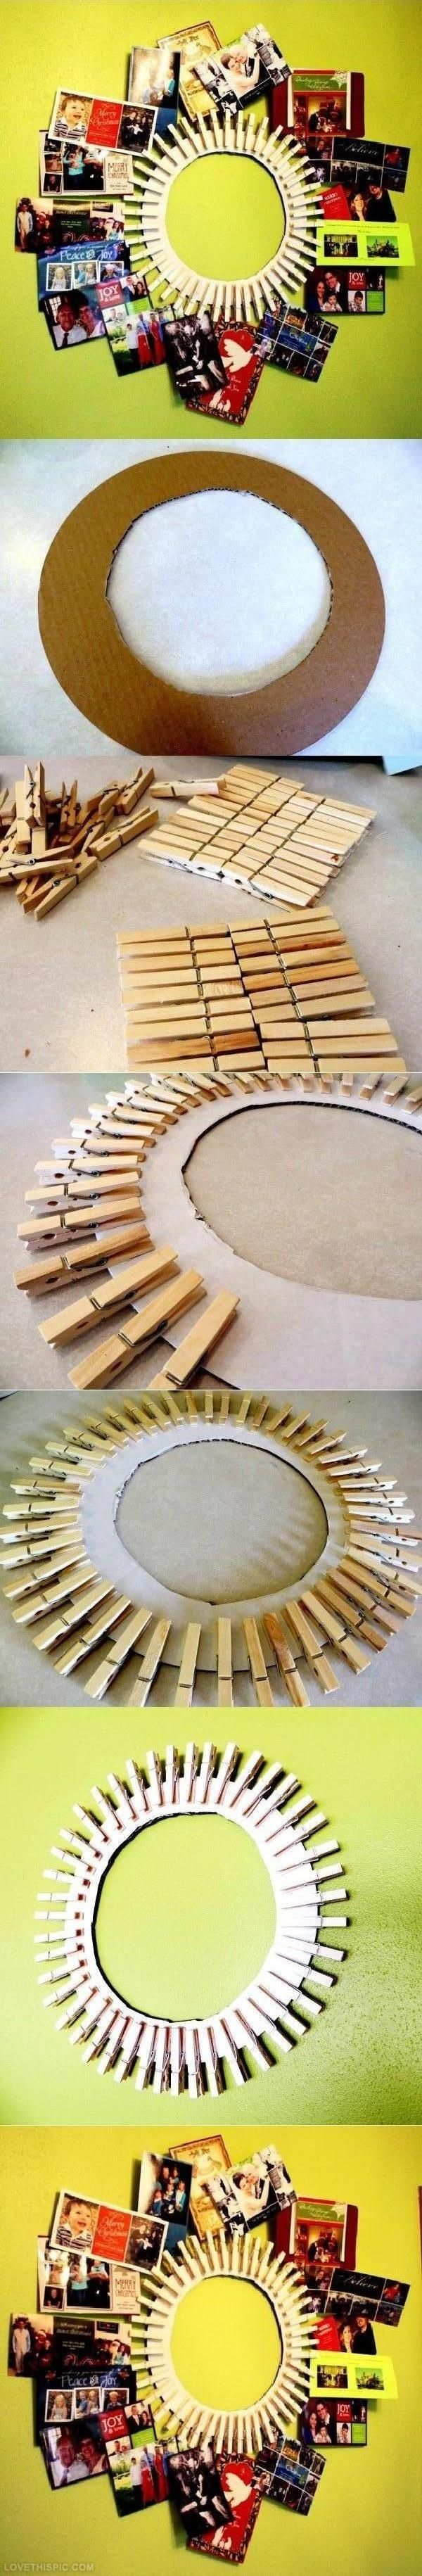 DIY picture frames diy crafts home made easy crafts craft idea crafts ideas diy ideas diy crafts diy idea do it yourself diy projects diy craft handmade picture frames frames cute crafts